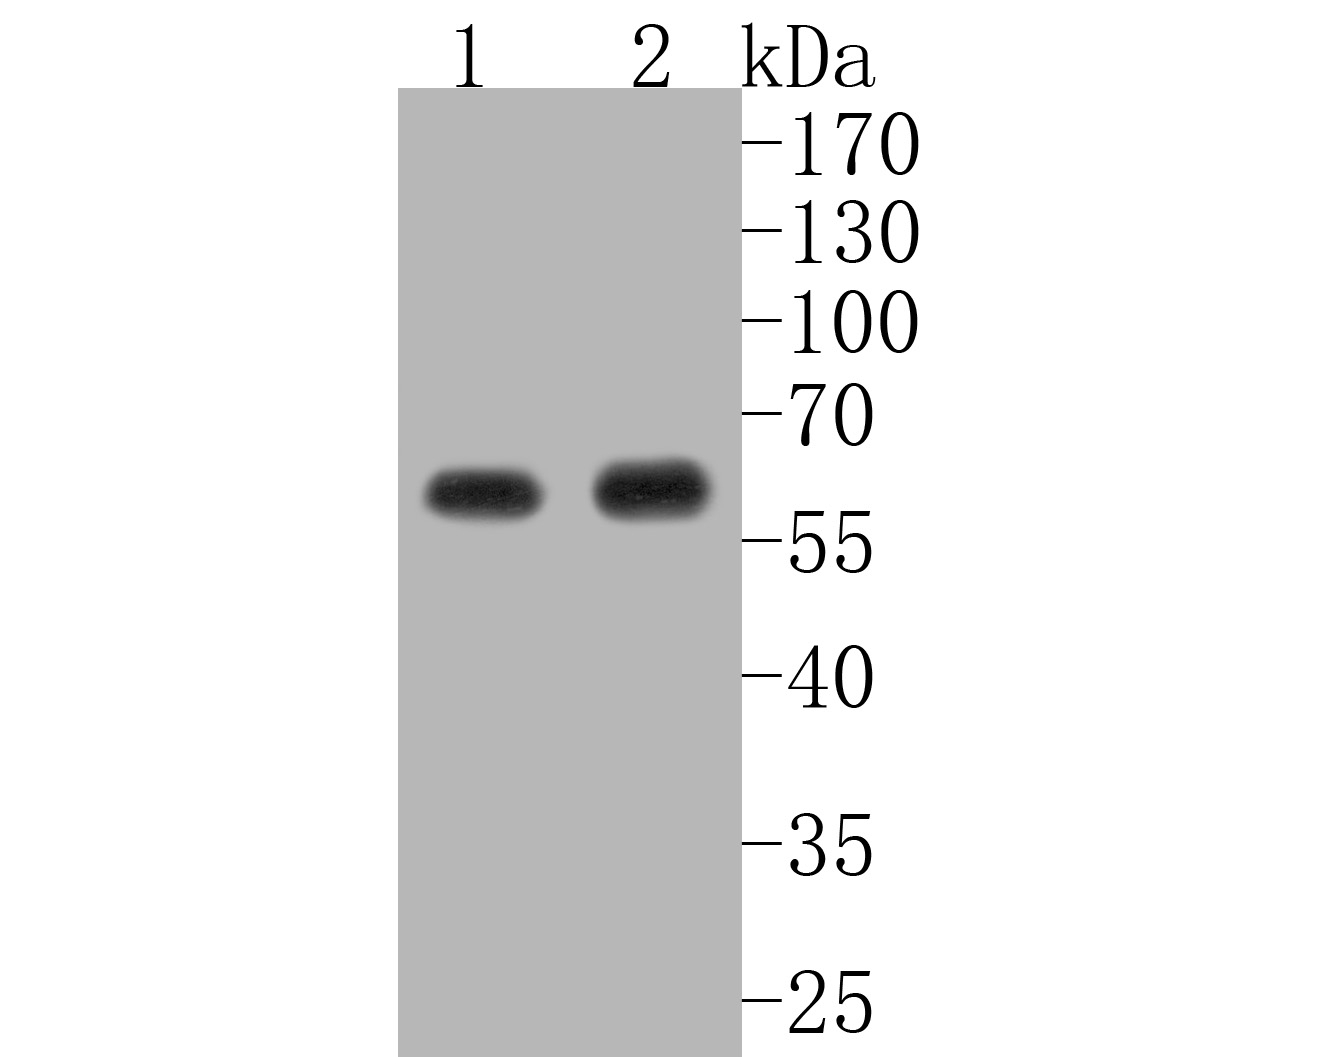 Western blot analysis of AKT1 on different lysates. Proteins were transferred to a PVDF membrane and blocked with 5% BSA in PBS for 1 hour at room temperature. The primary antibody (ET1609-47, 1/500) was used in 5% BSA at room temperature for 2 hours. Goat Anti-Rabbit IgG - HRP Secondary Antibody (HA1001) at 1:5,000 dilution was used for 1 hour at room temperature.<br /> Positive control: <br /> Lane 1: BT-20 cell lysate<br /> Lane 2: MCF-7 cell lysate